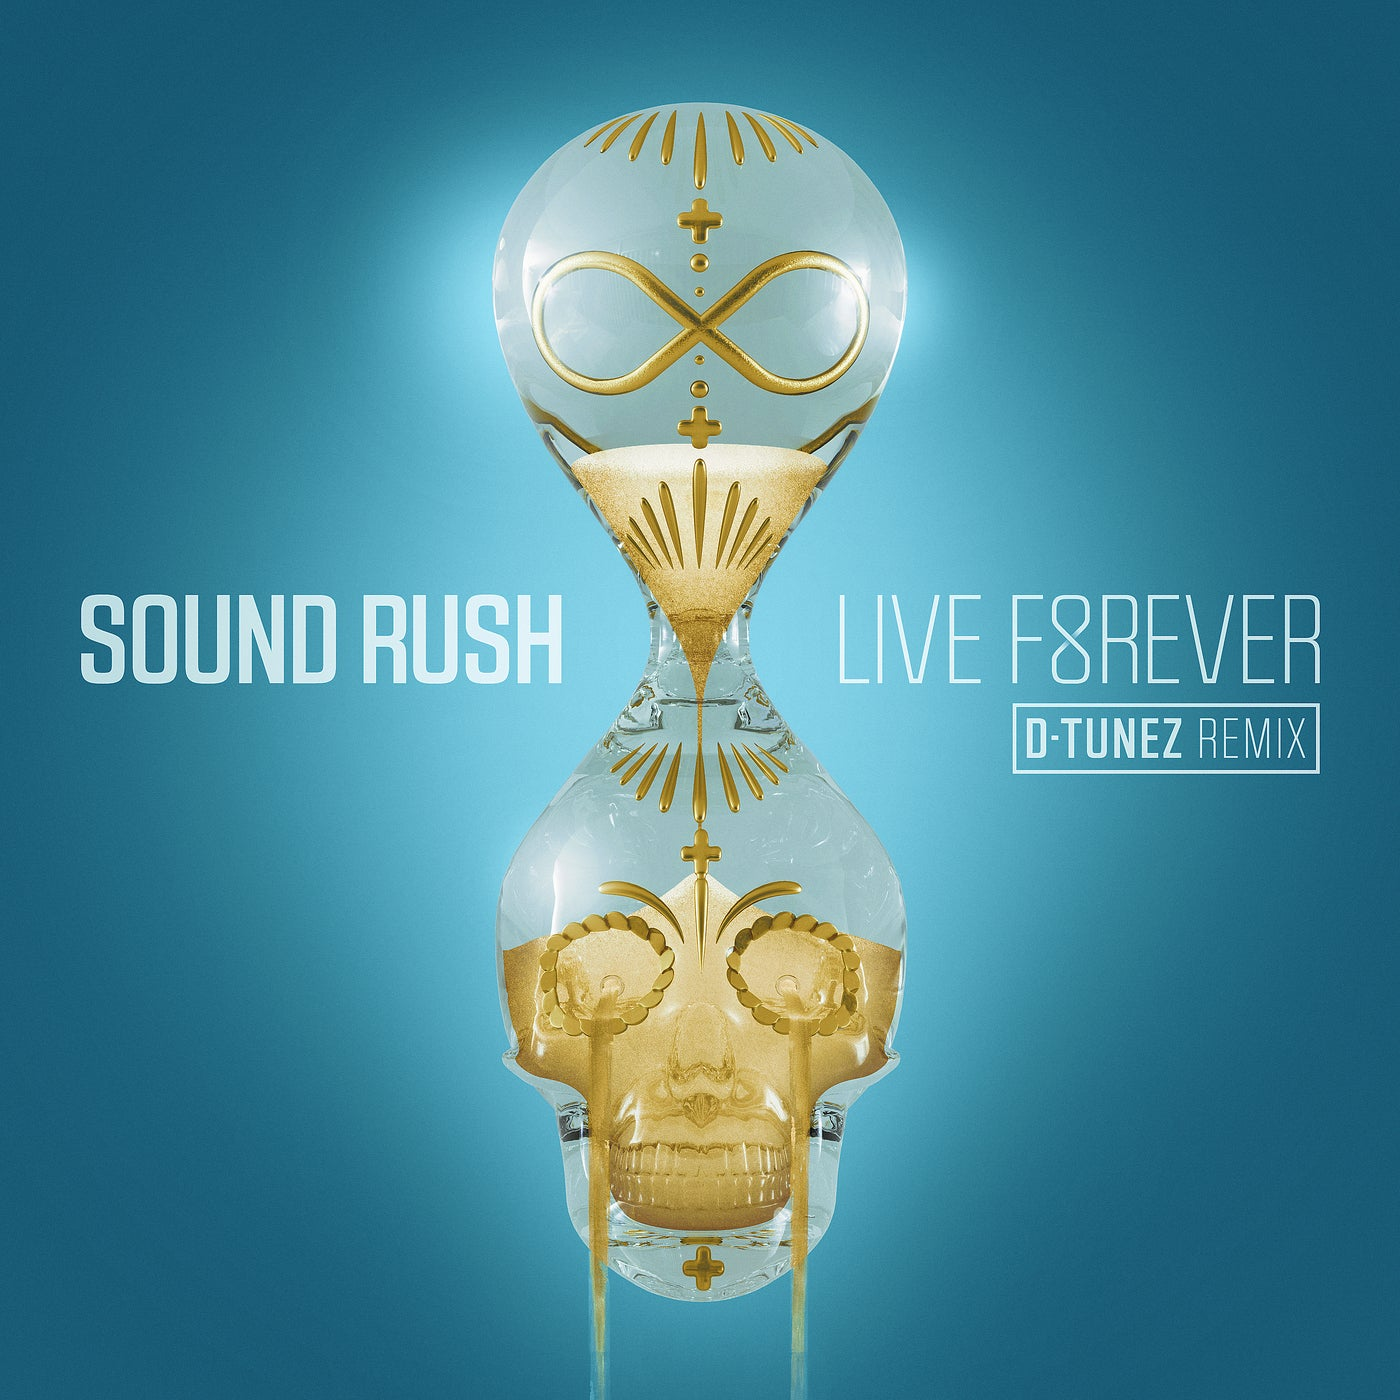 Live Forever (D-Tunez Remix Extended Mix)